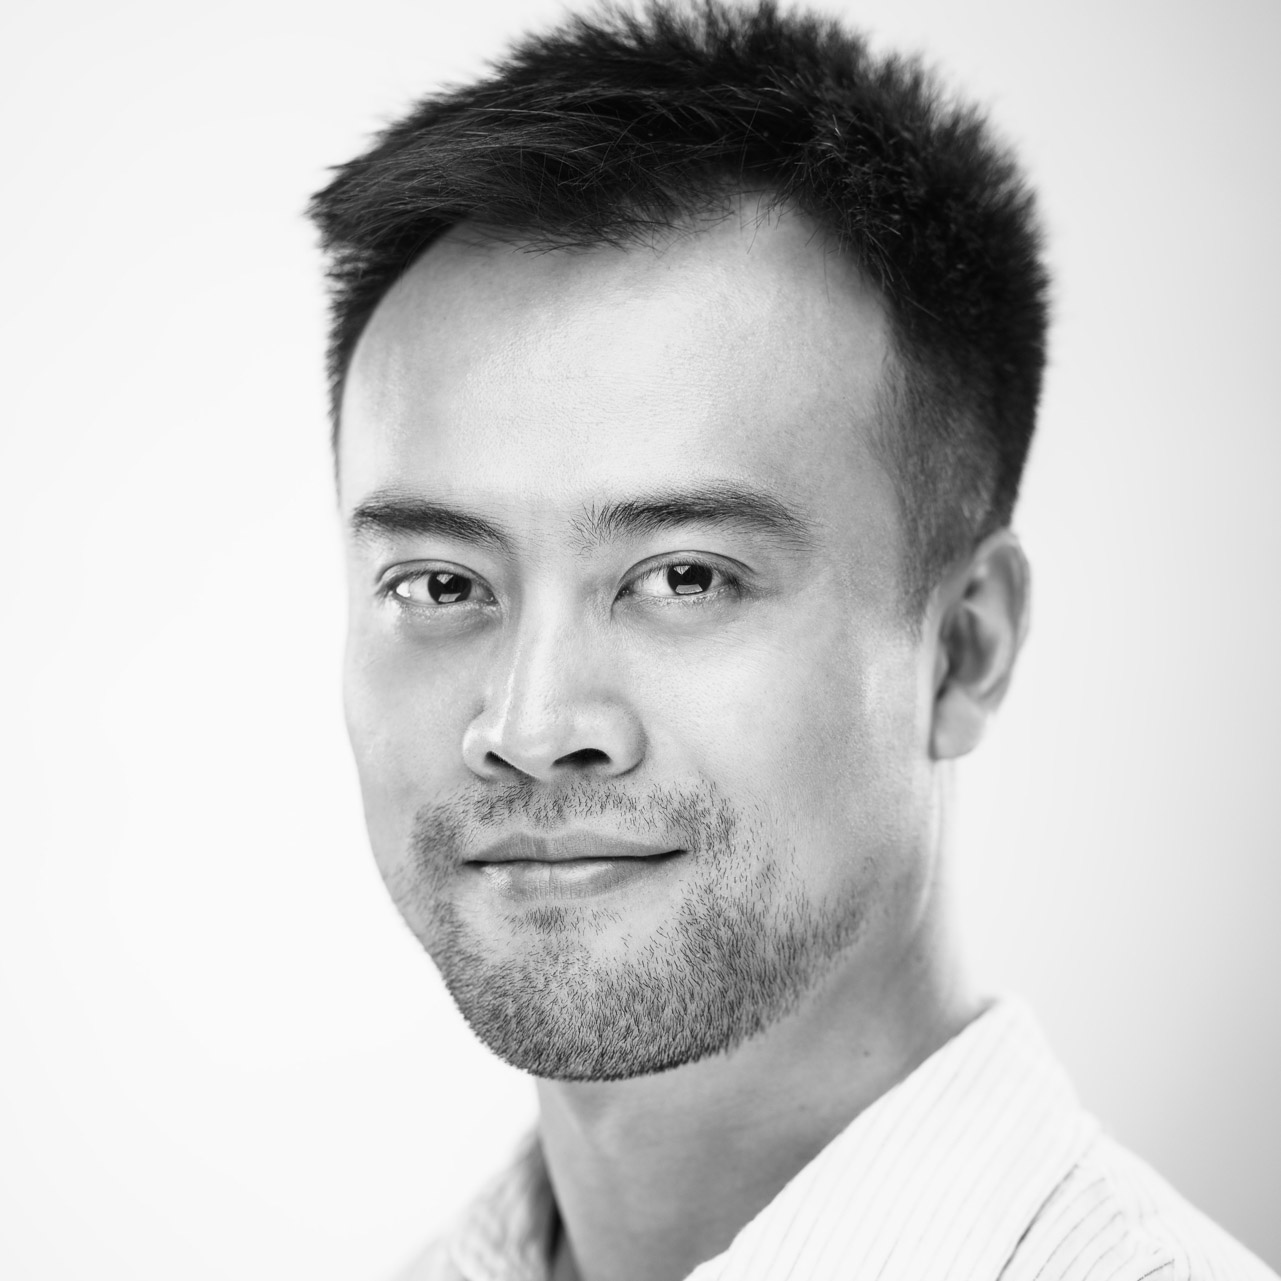 As program director at HAX, Ji Ke is responsible for driving the content and delivery of the HAX Seed accelerator program in Shenzhen. He oversees all elements of recruitment, application review and due diligence, curriculum development, mentorship development and program execution. He also provides ongoing mentorship and support for teams in-program and HAX alumni.